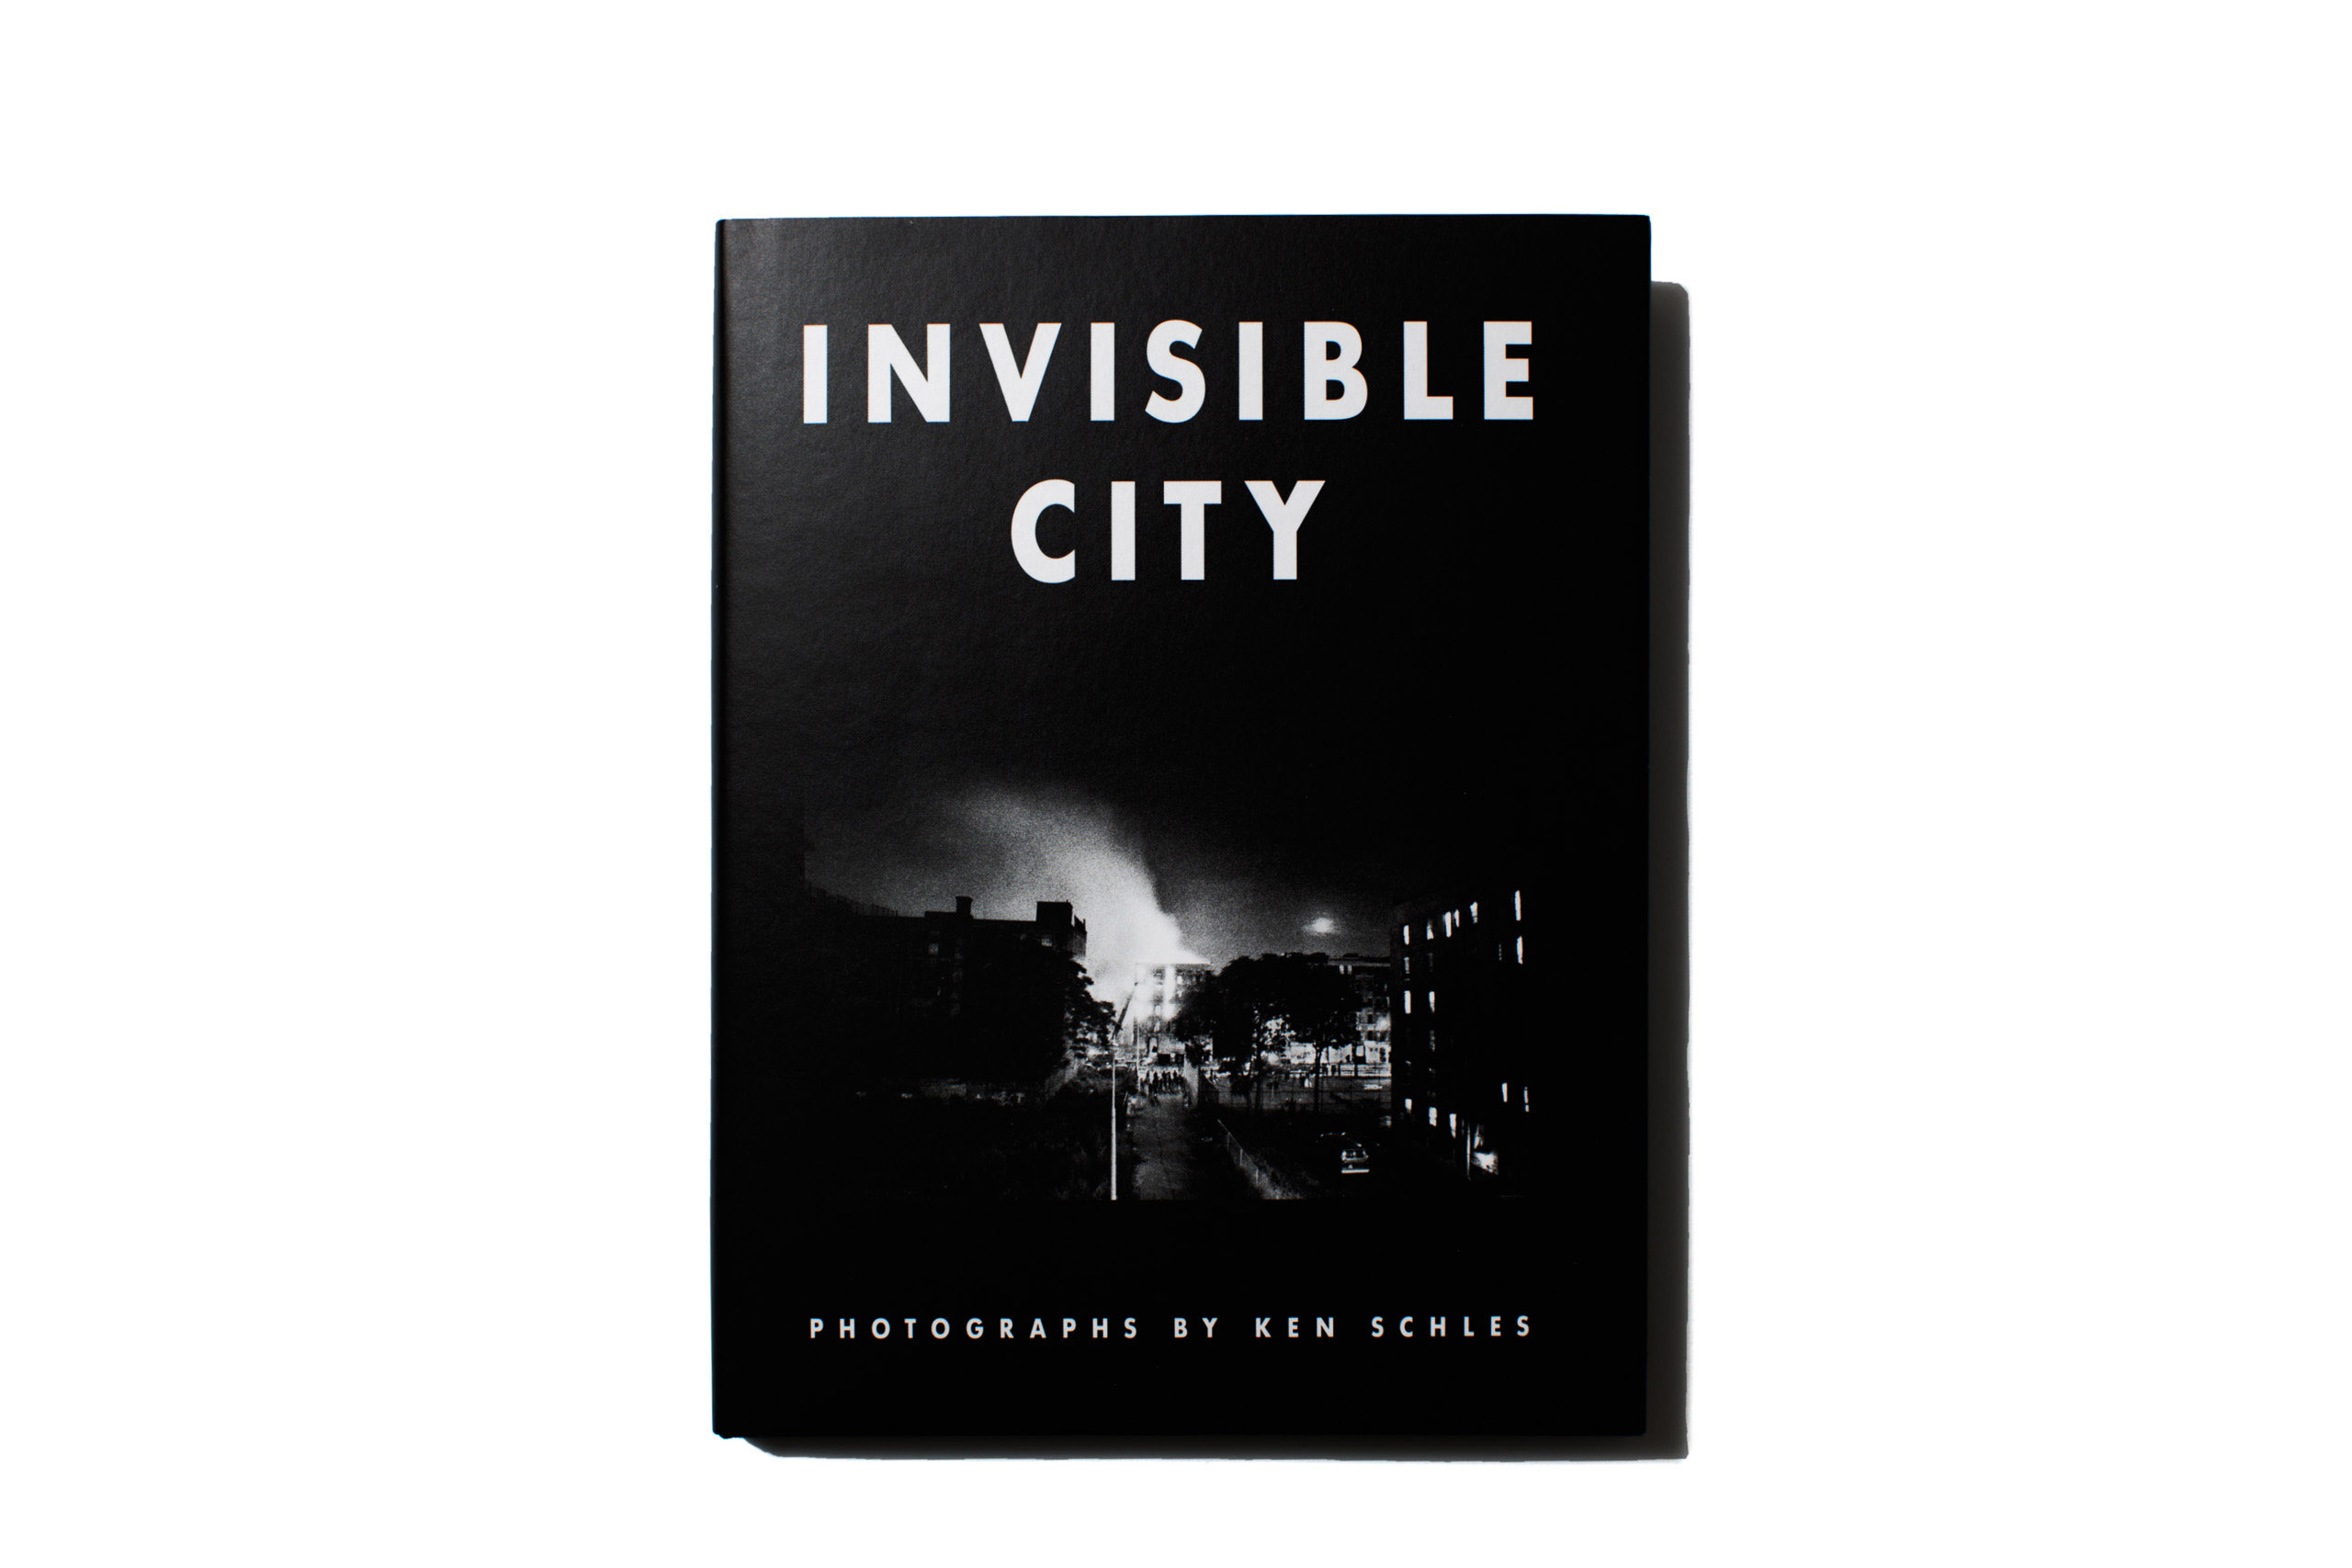 """<a href=""""http://www.amazon.com/Invisible-City-Ken-Schles/dp/094264235X""""><i><b>                                   Invisible City                                   </i></b></a> by                                   Ken Schles,                                    published by                                   Steidl,                                   selected by Michelle Molloy, International Photo Editor, <i>TIME</i>."""